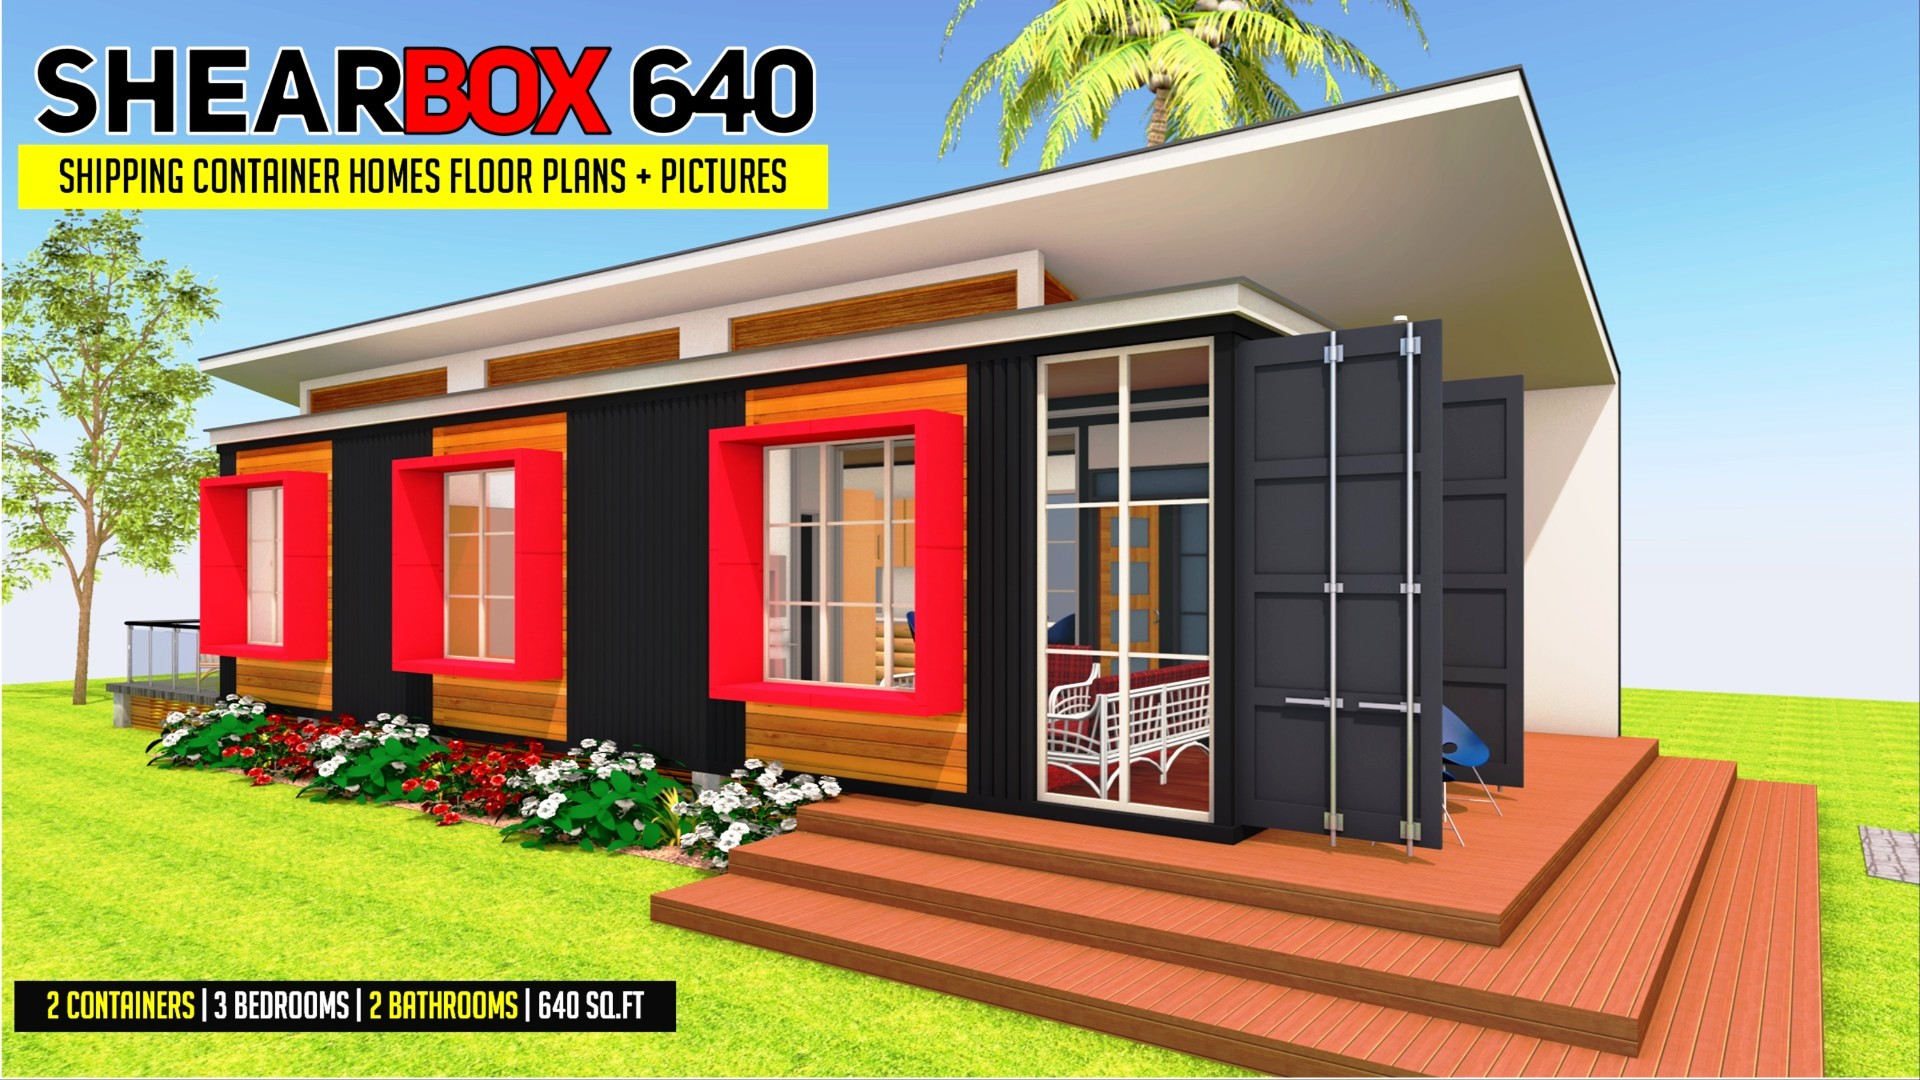 SHEARBOX 640 | Shipping Container Homes Plans